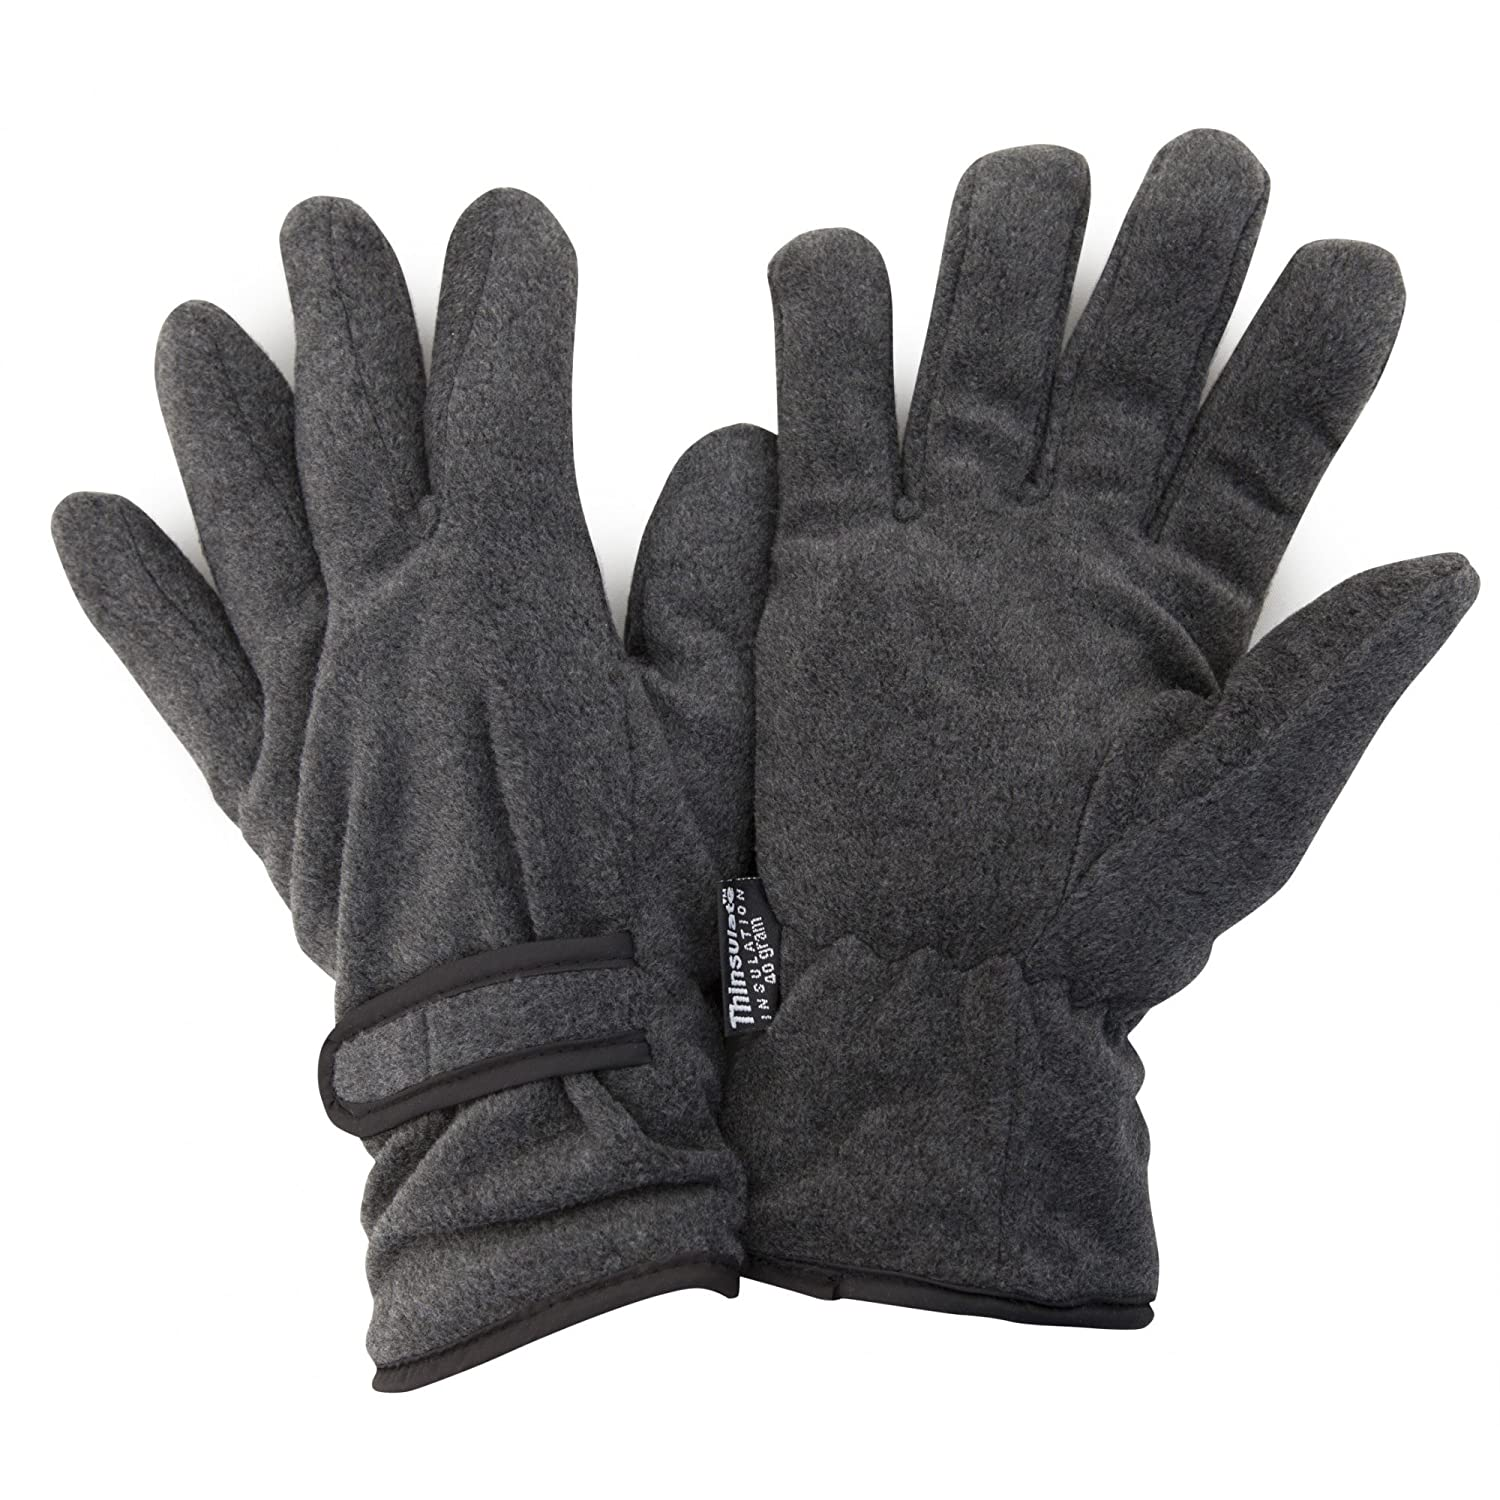 3M 40g FLOSO Mens Winter Thermal Fleece Gloves